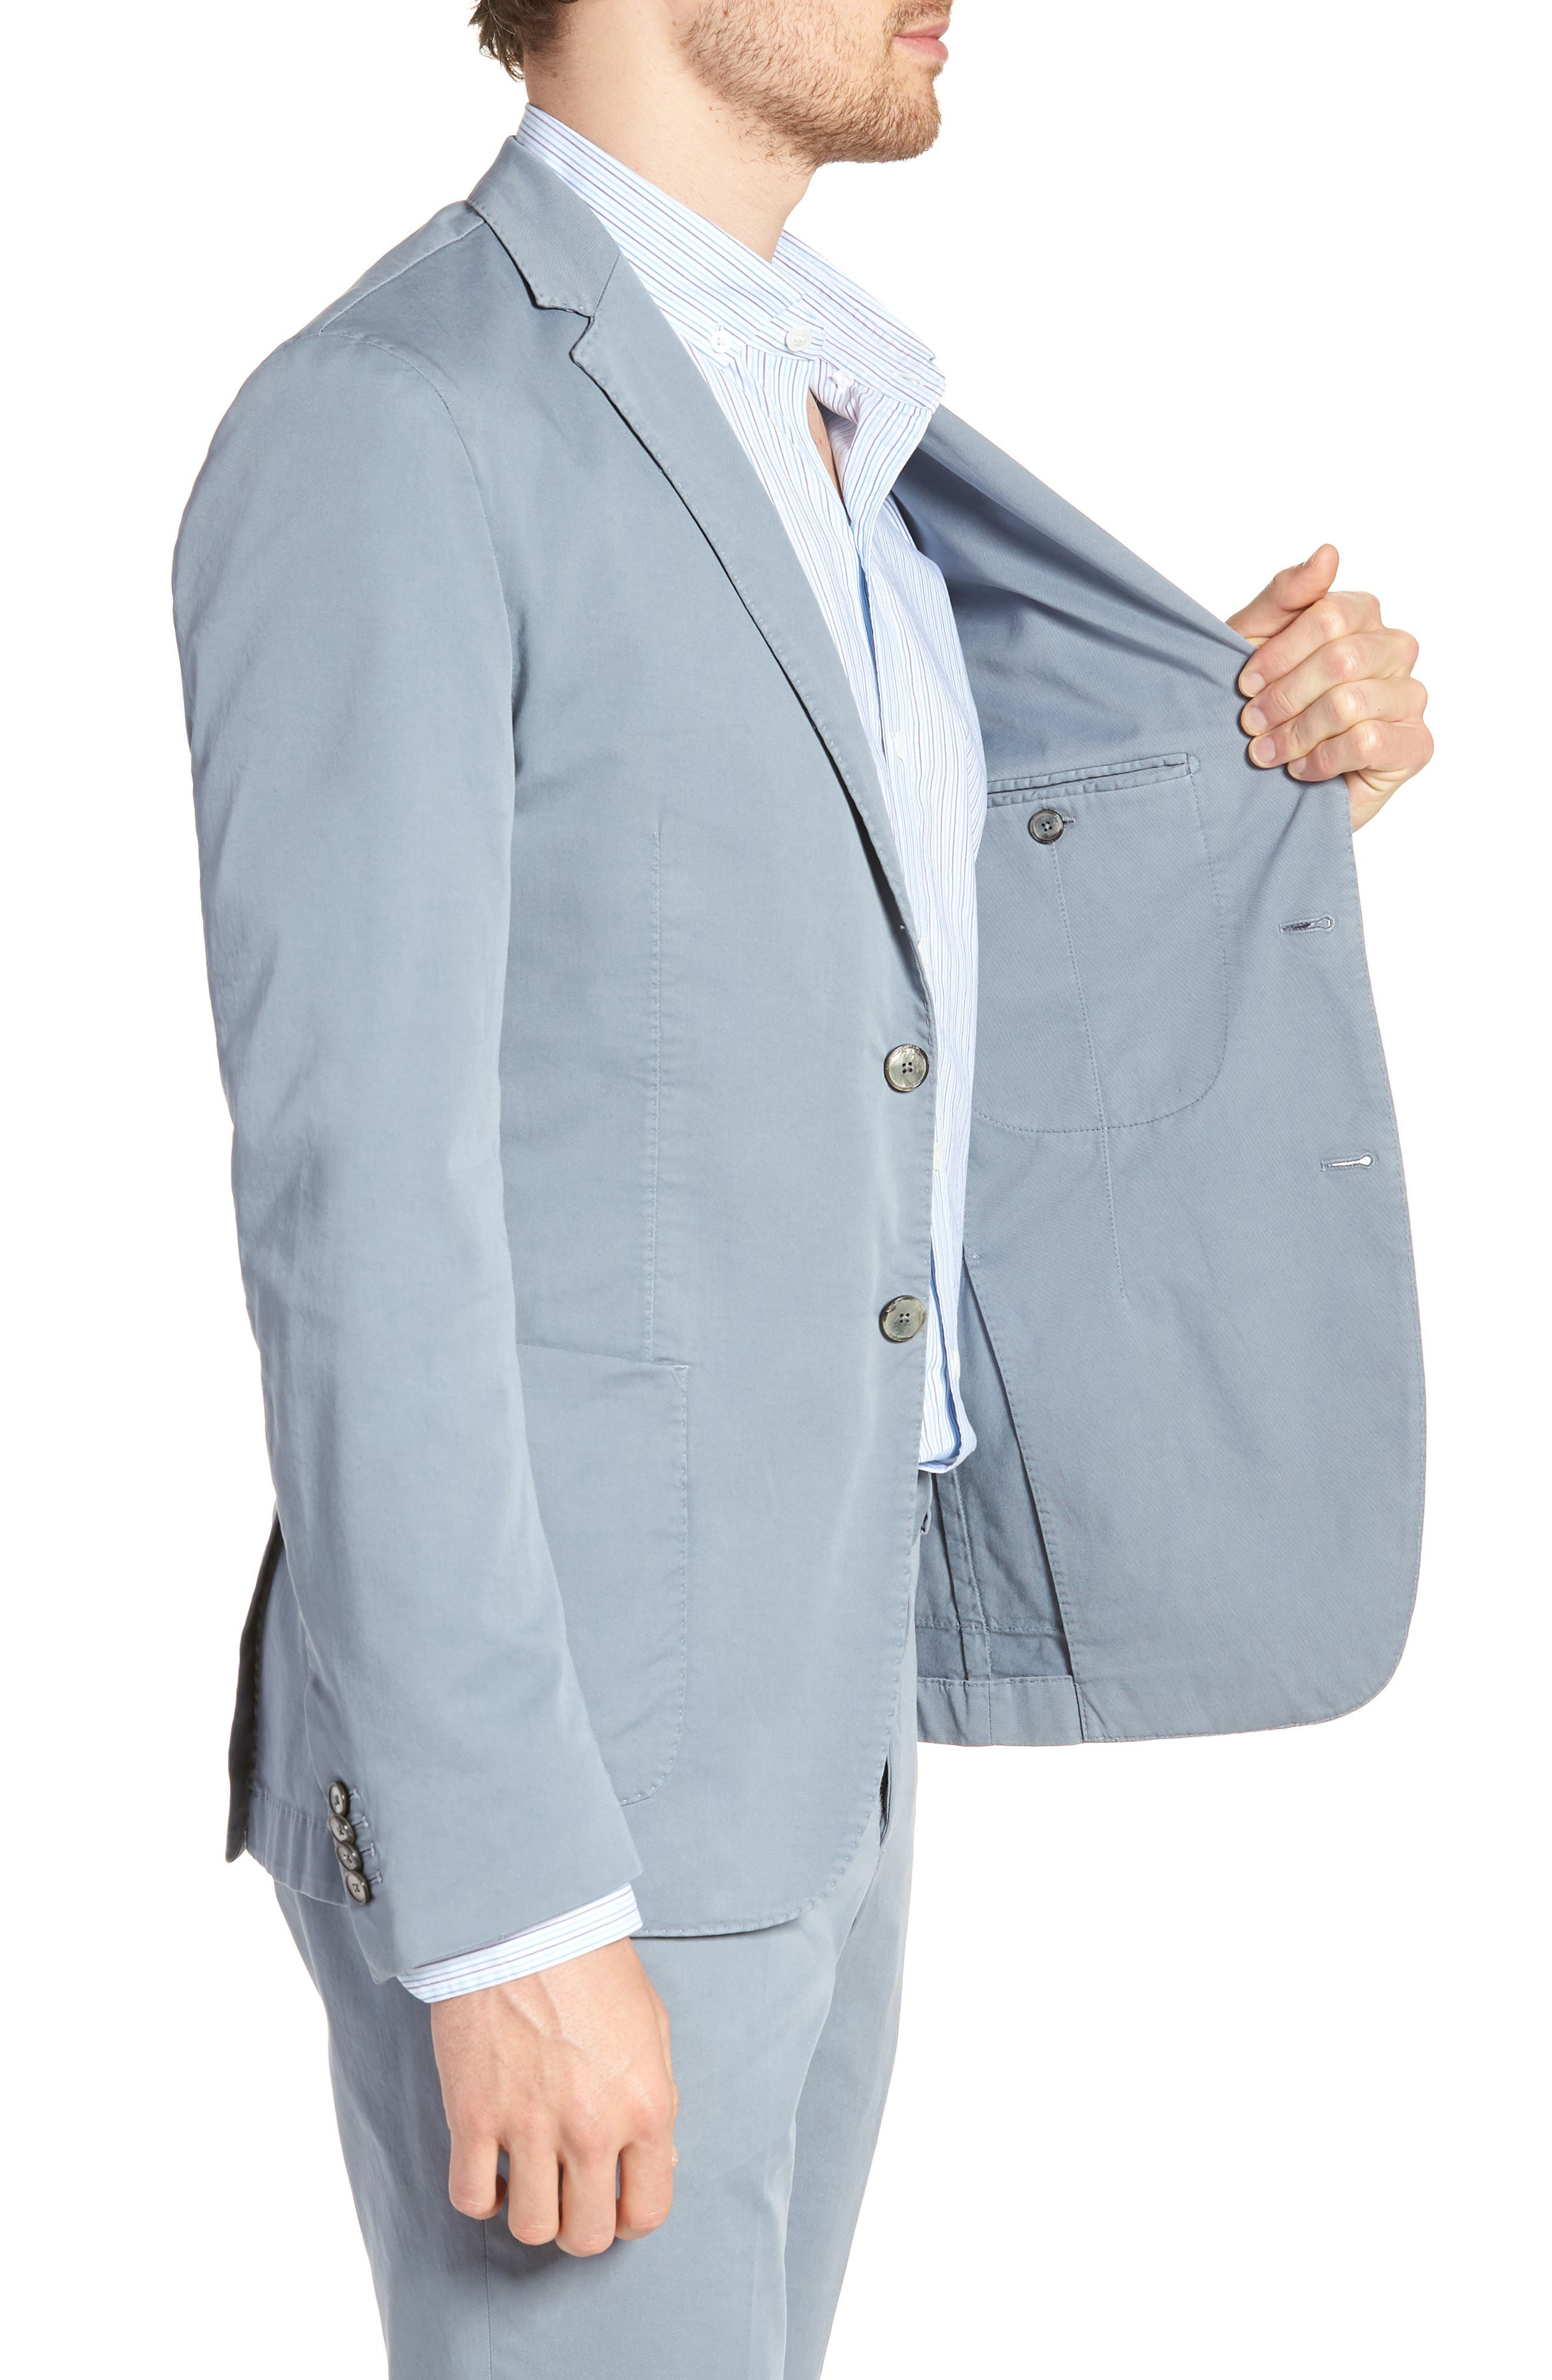 Hanry-D Trim Fit Stretch Cotton Blazer,                             Alternate thumbnail 3, color,                             Blue